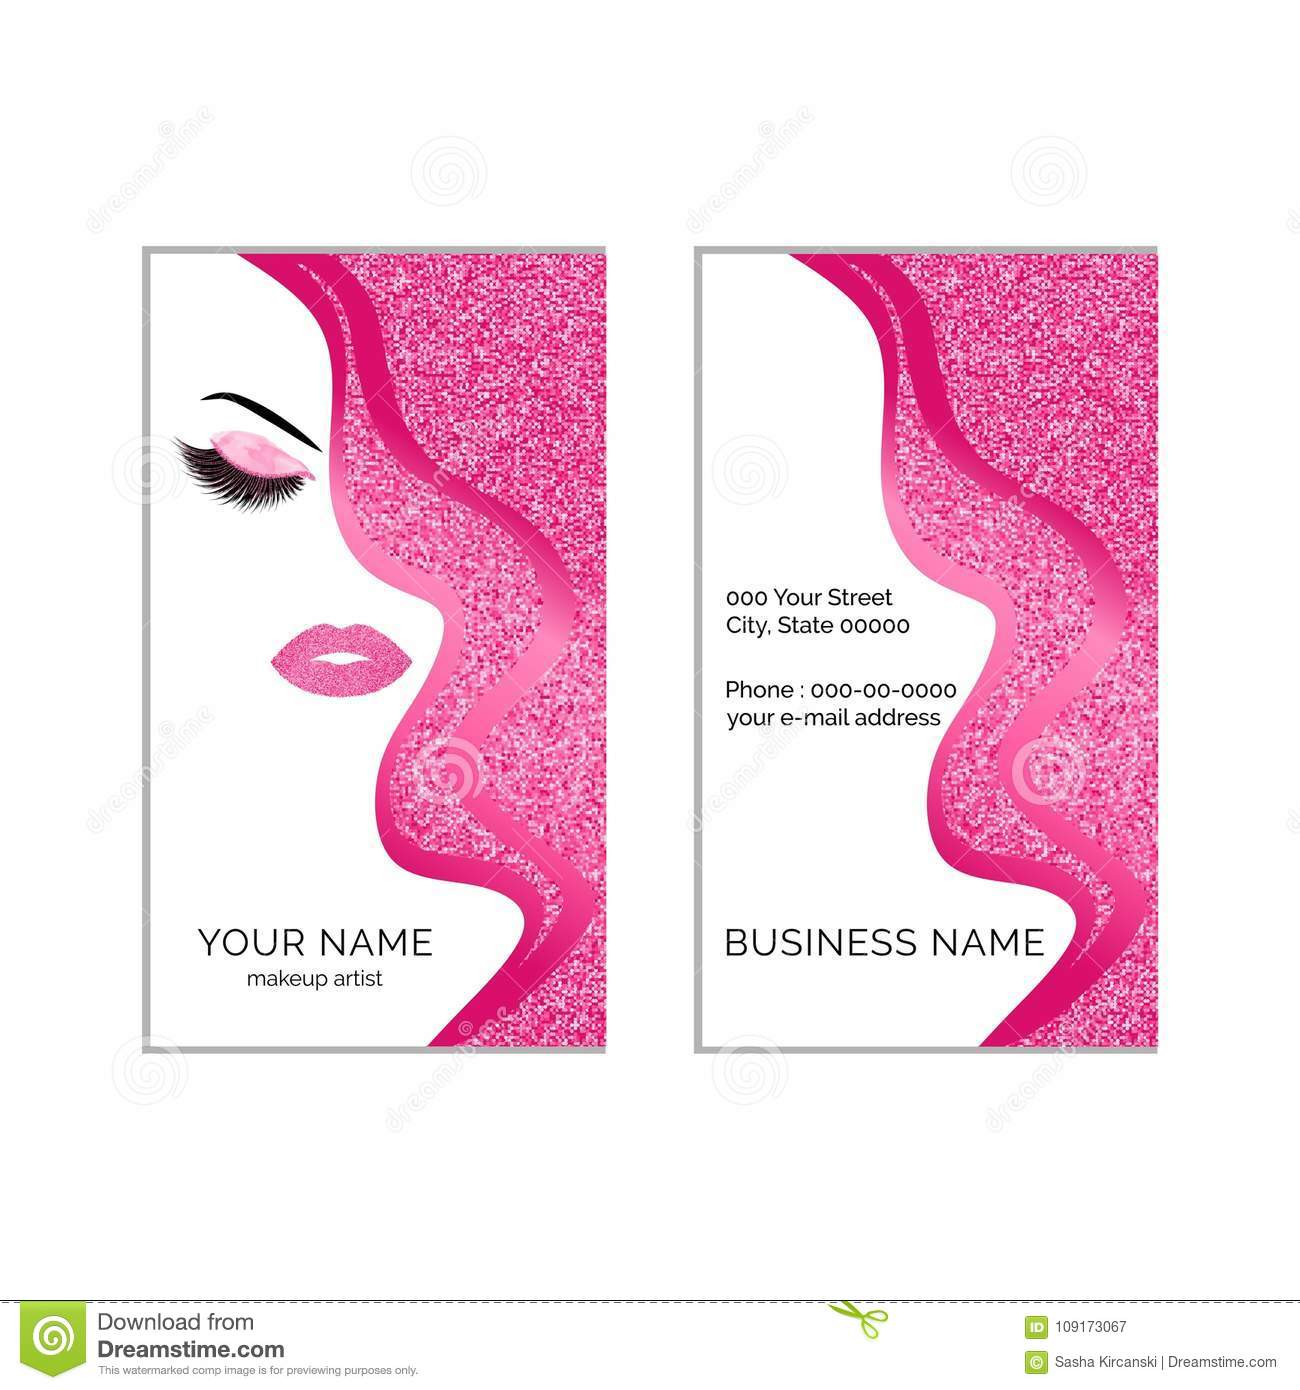 Makeup artist business card vector template stock vector makeup artist business card template flashek